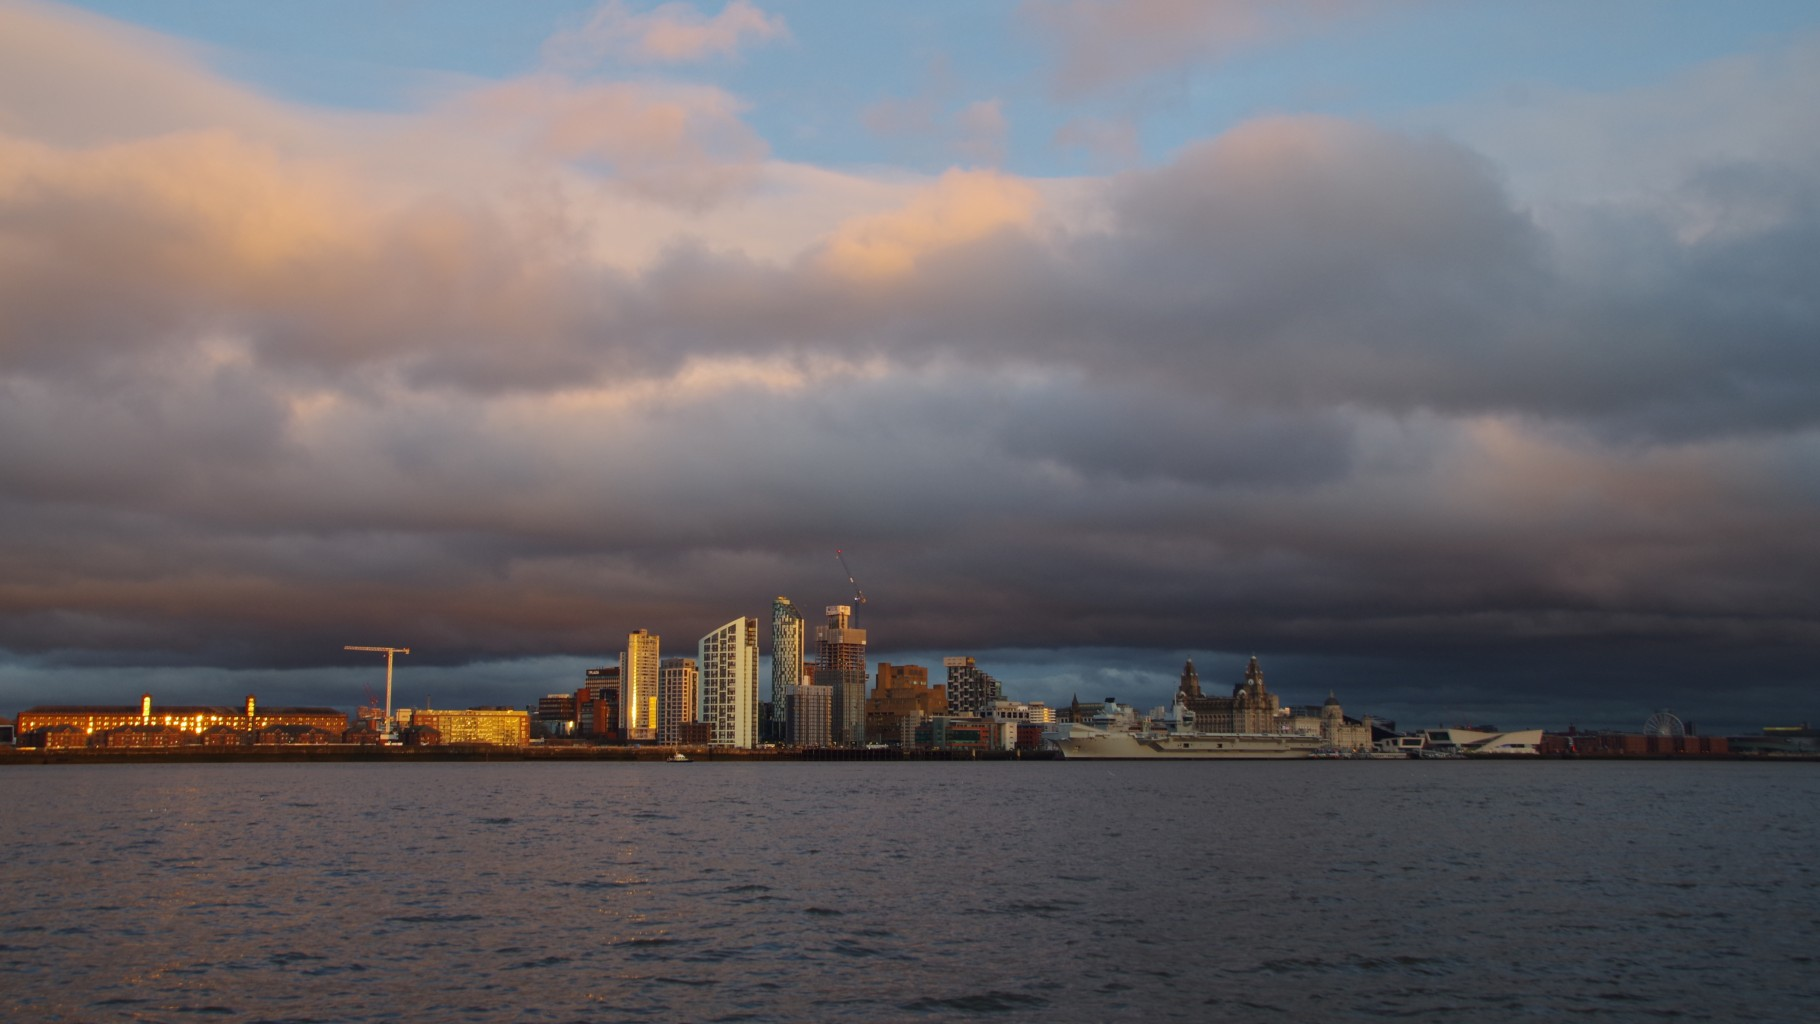 A Stormy Liverpool Evening